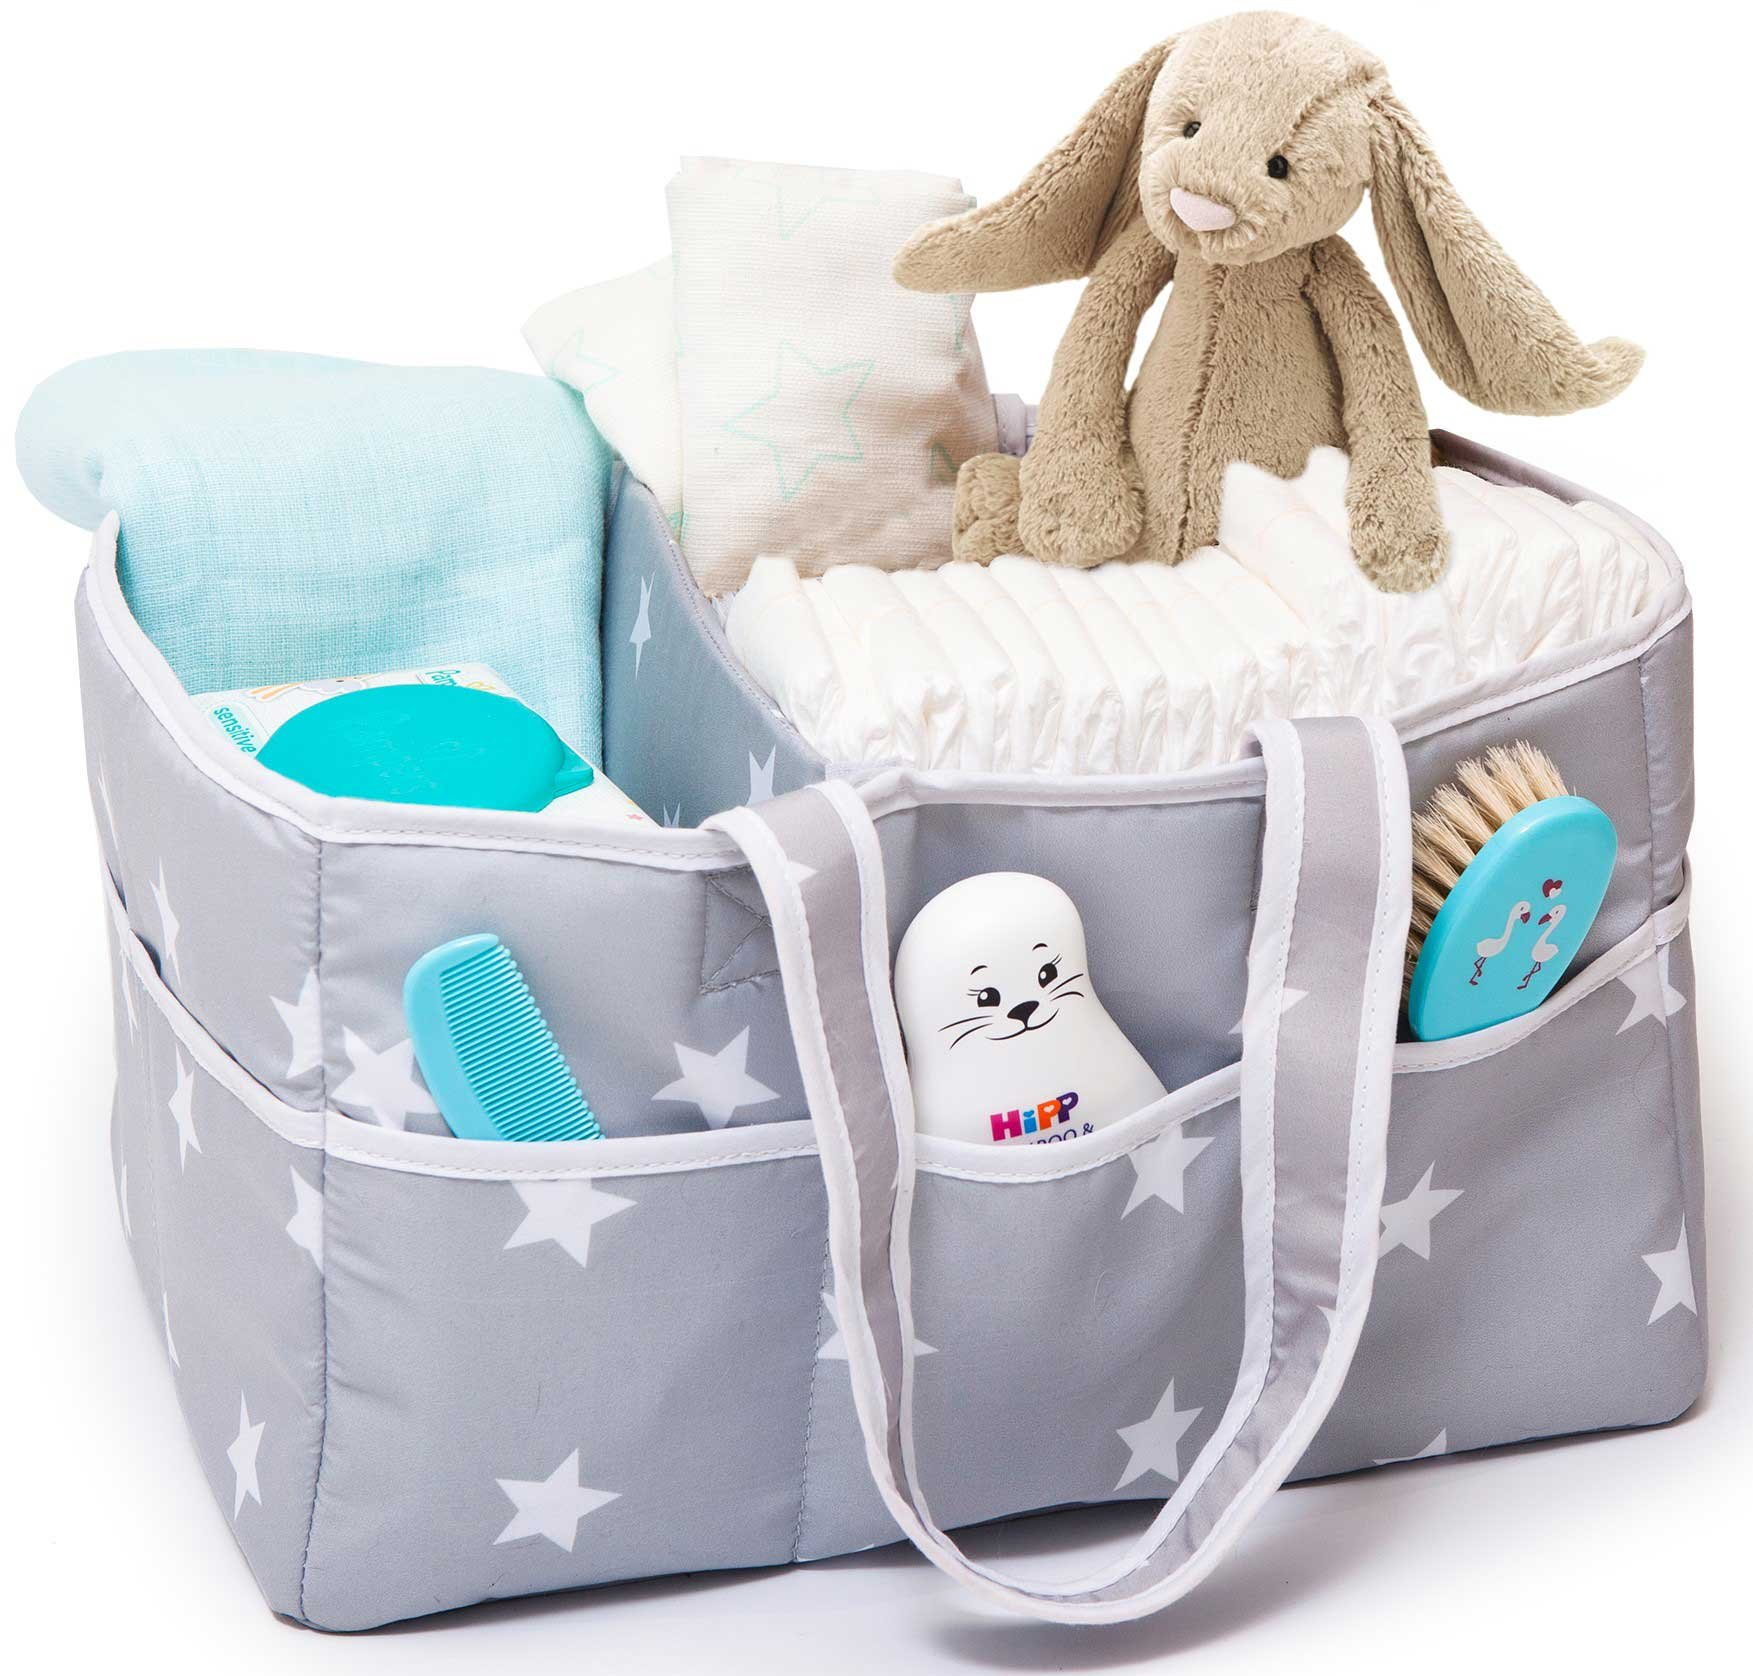 Large Portable Baby Diaper Caddy Organizer for All Diaper Sizes, Nursery Storage Bin and Changing Table Basket, Car Travel Organizer, Baby Shower Basket, Baby Registry Must Have